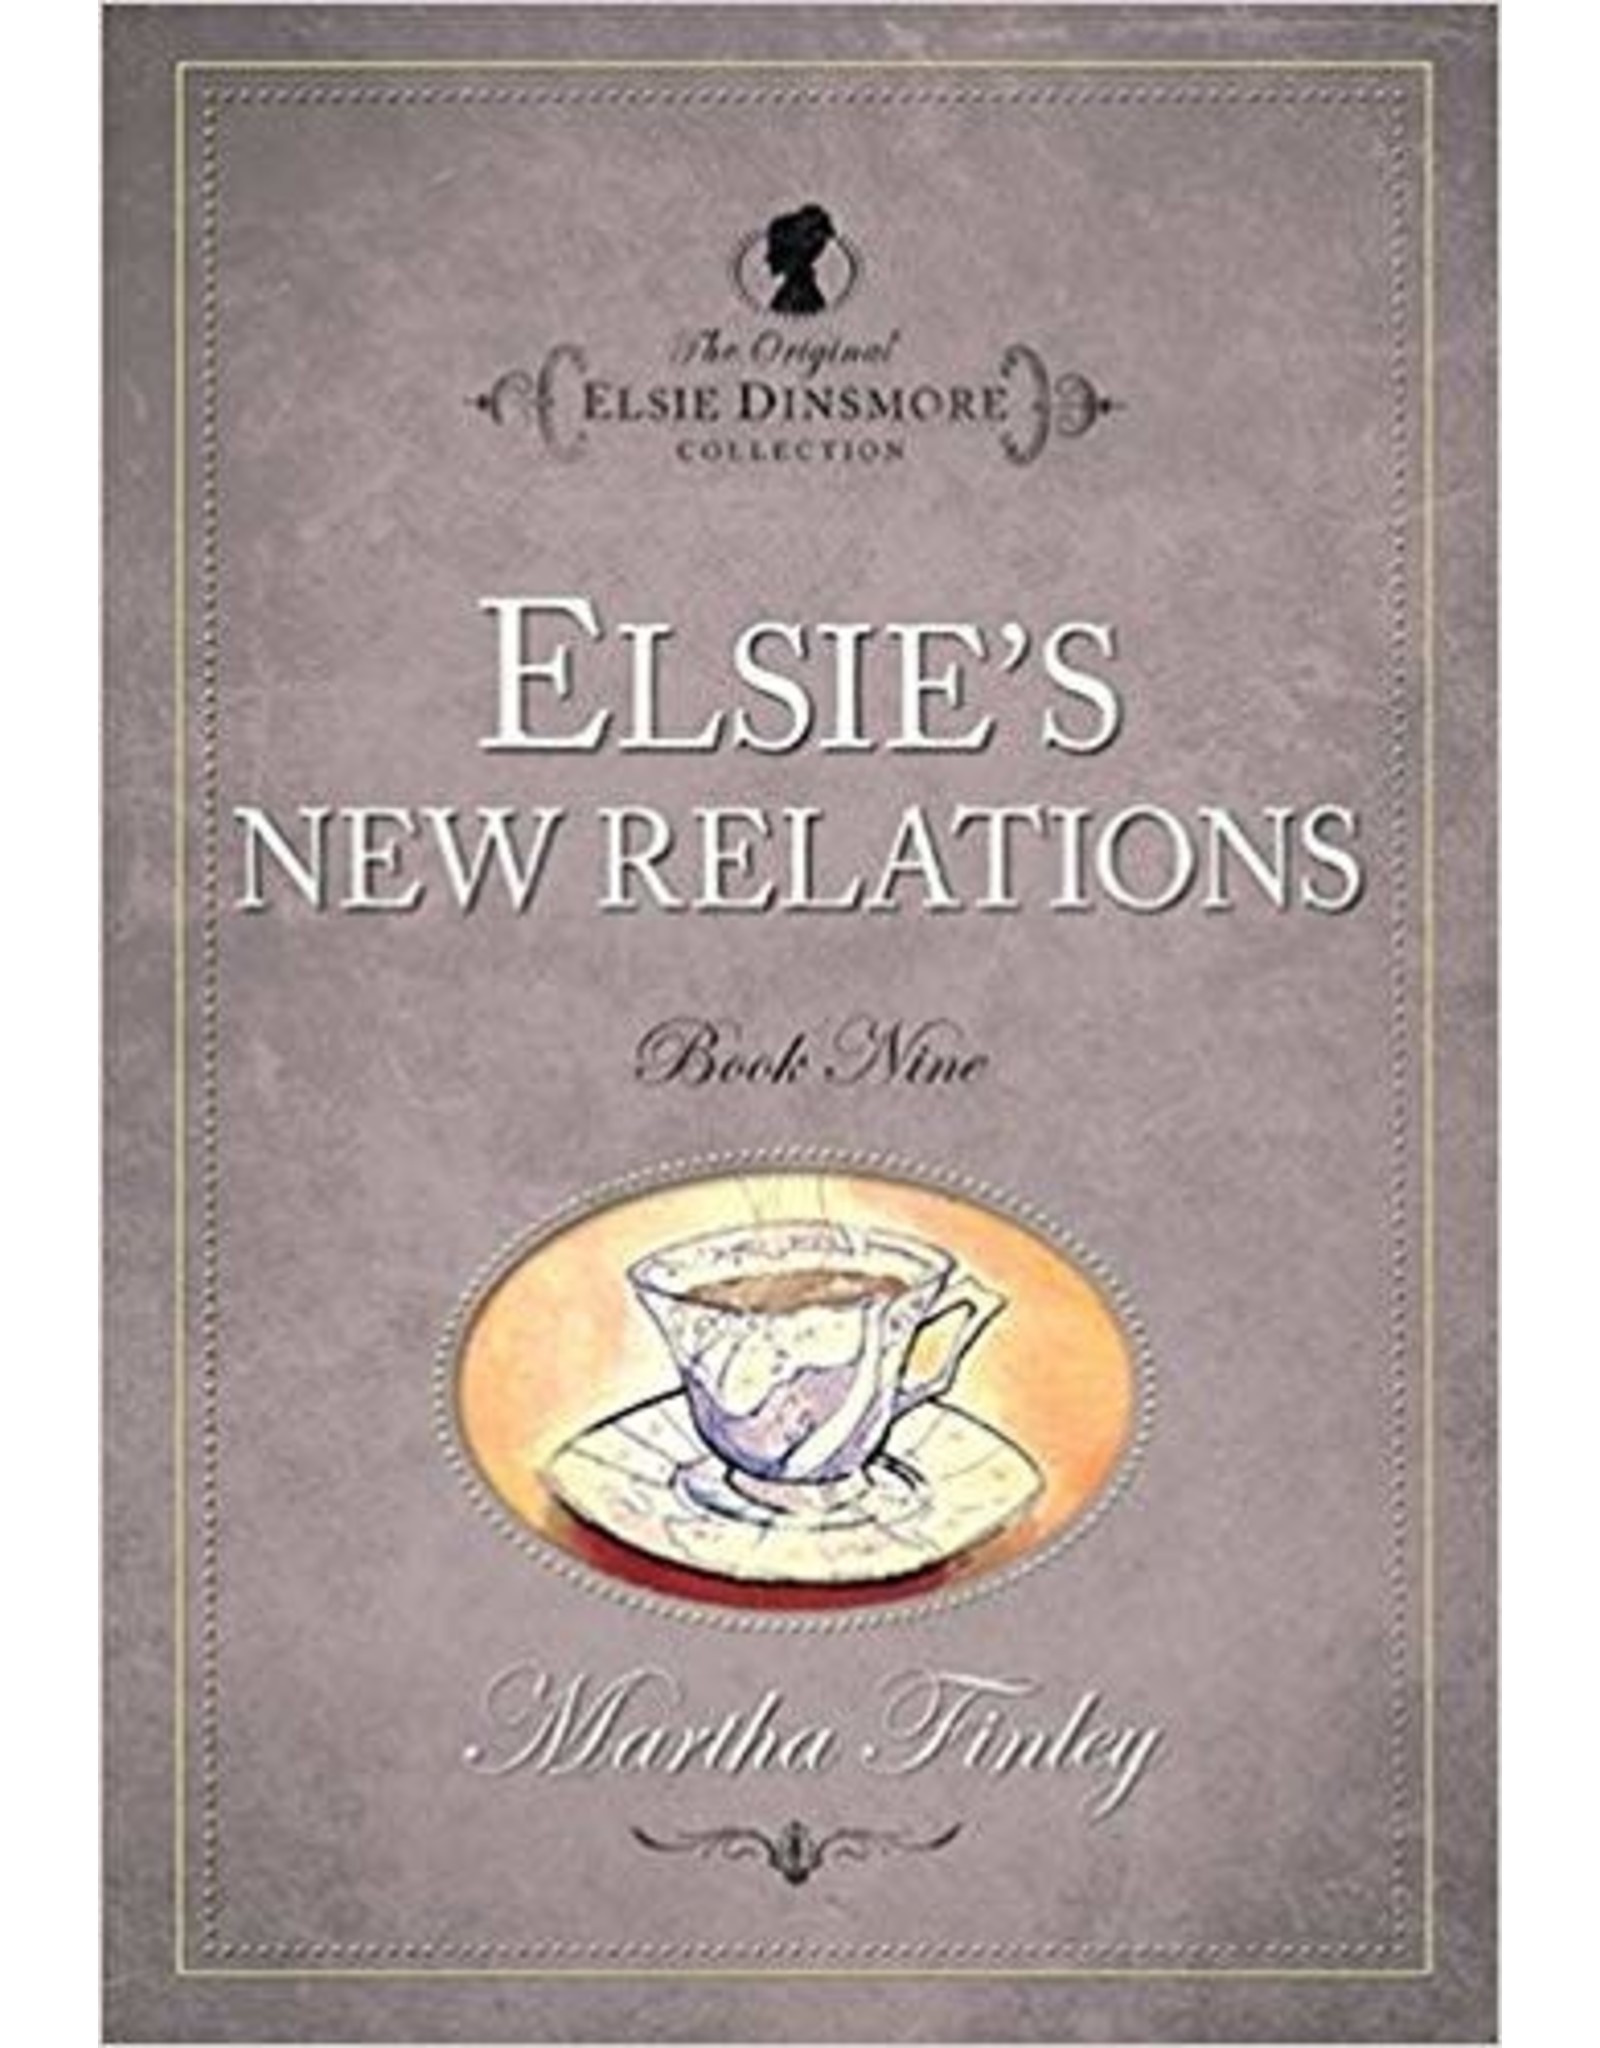 Martha Finley Elsie's New Relations - Book 9